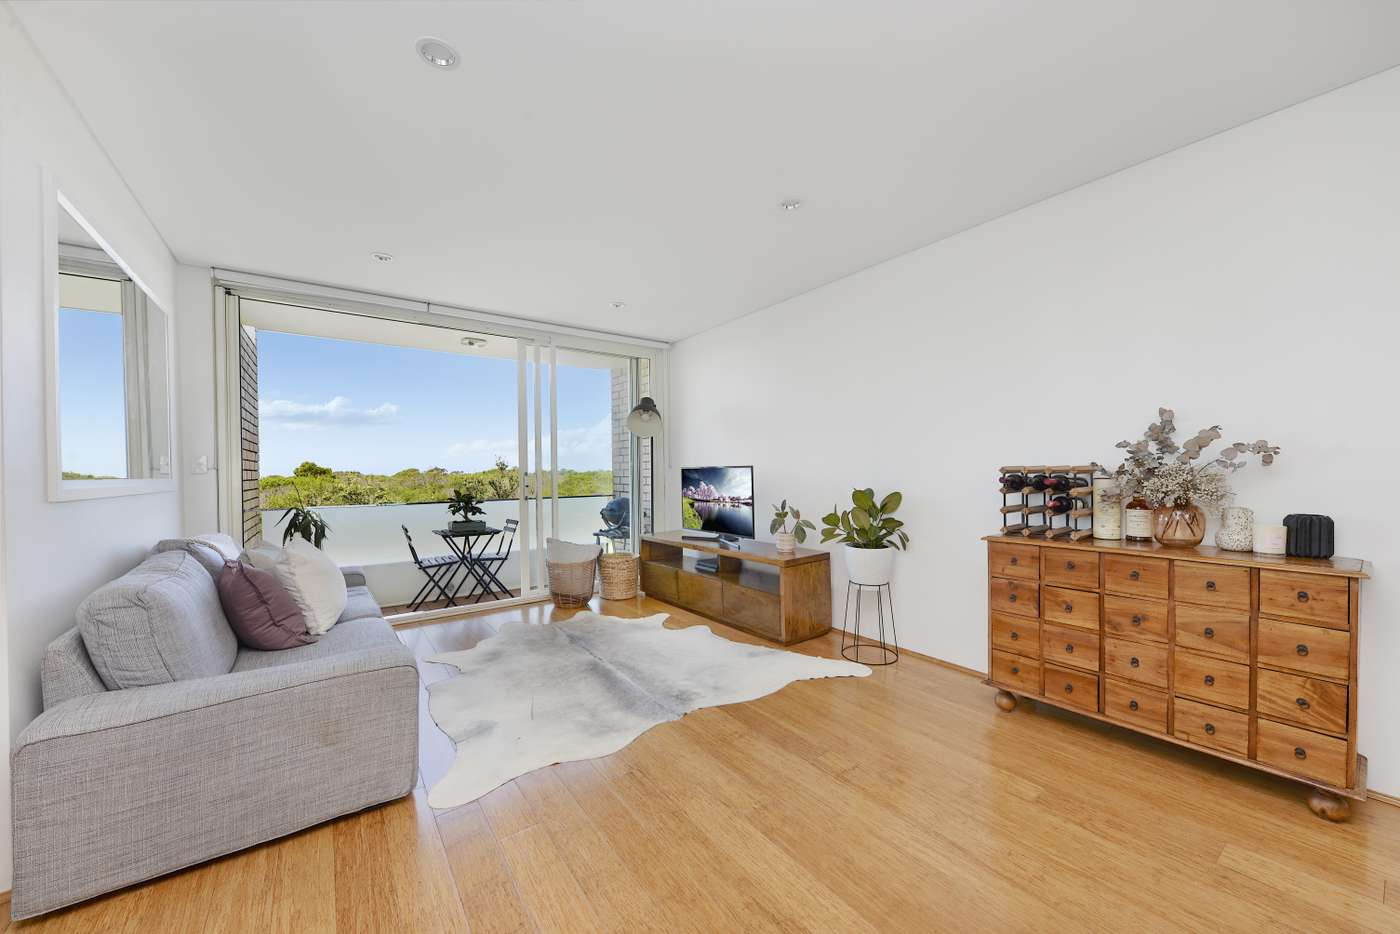 Main view of Homely unit listing, 11/83 Broome Street, Maroubra NSW 2035